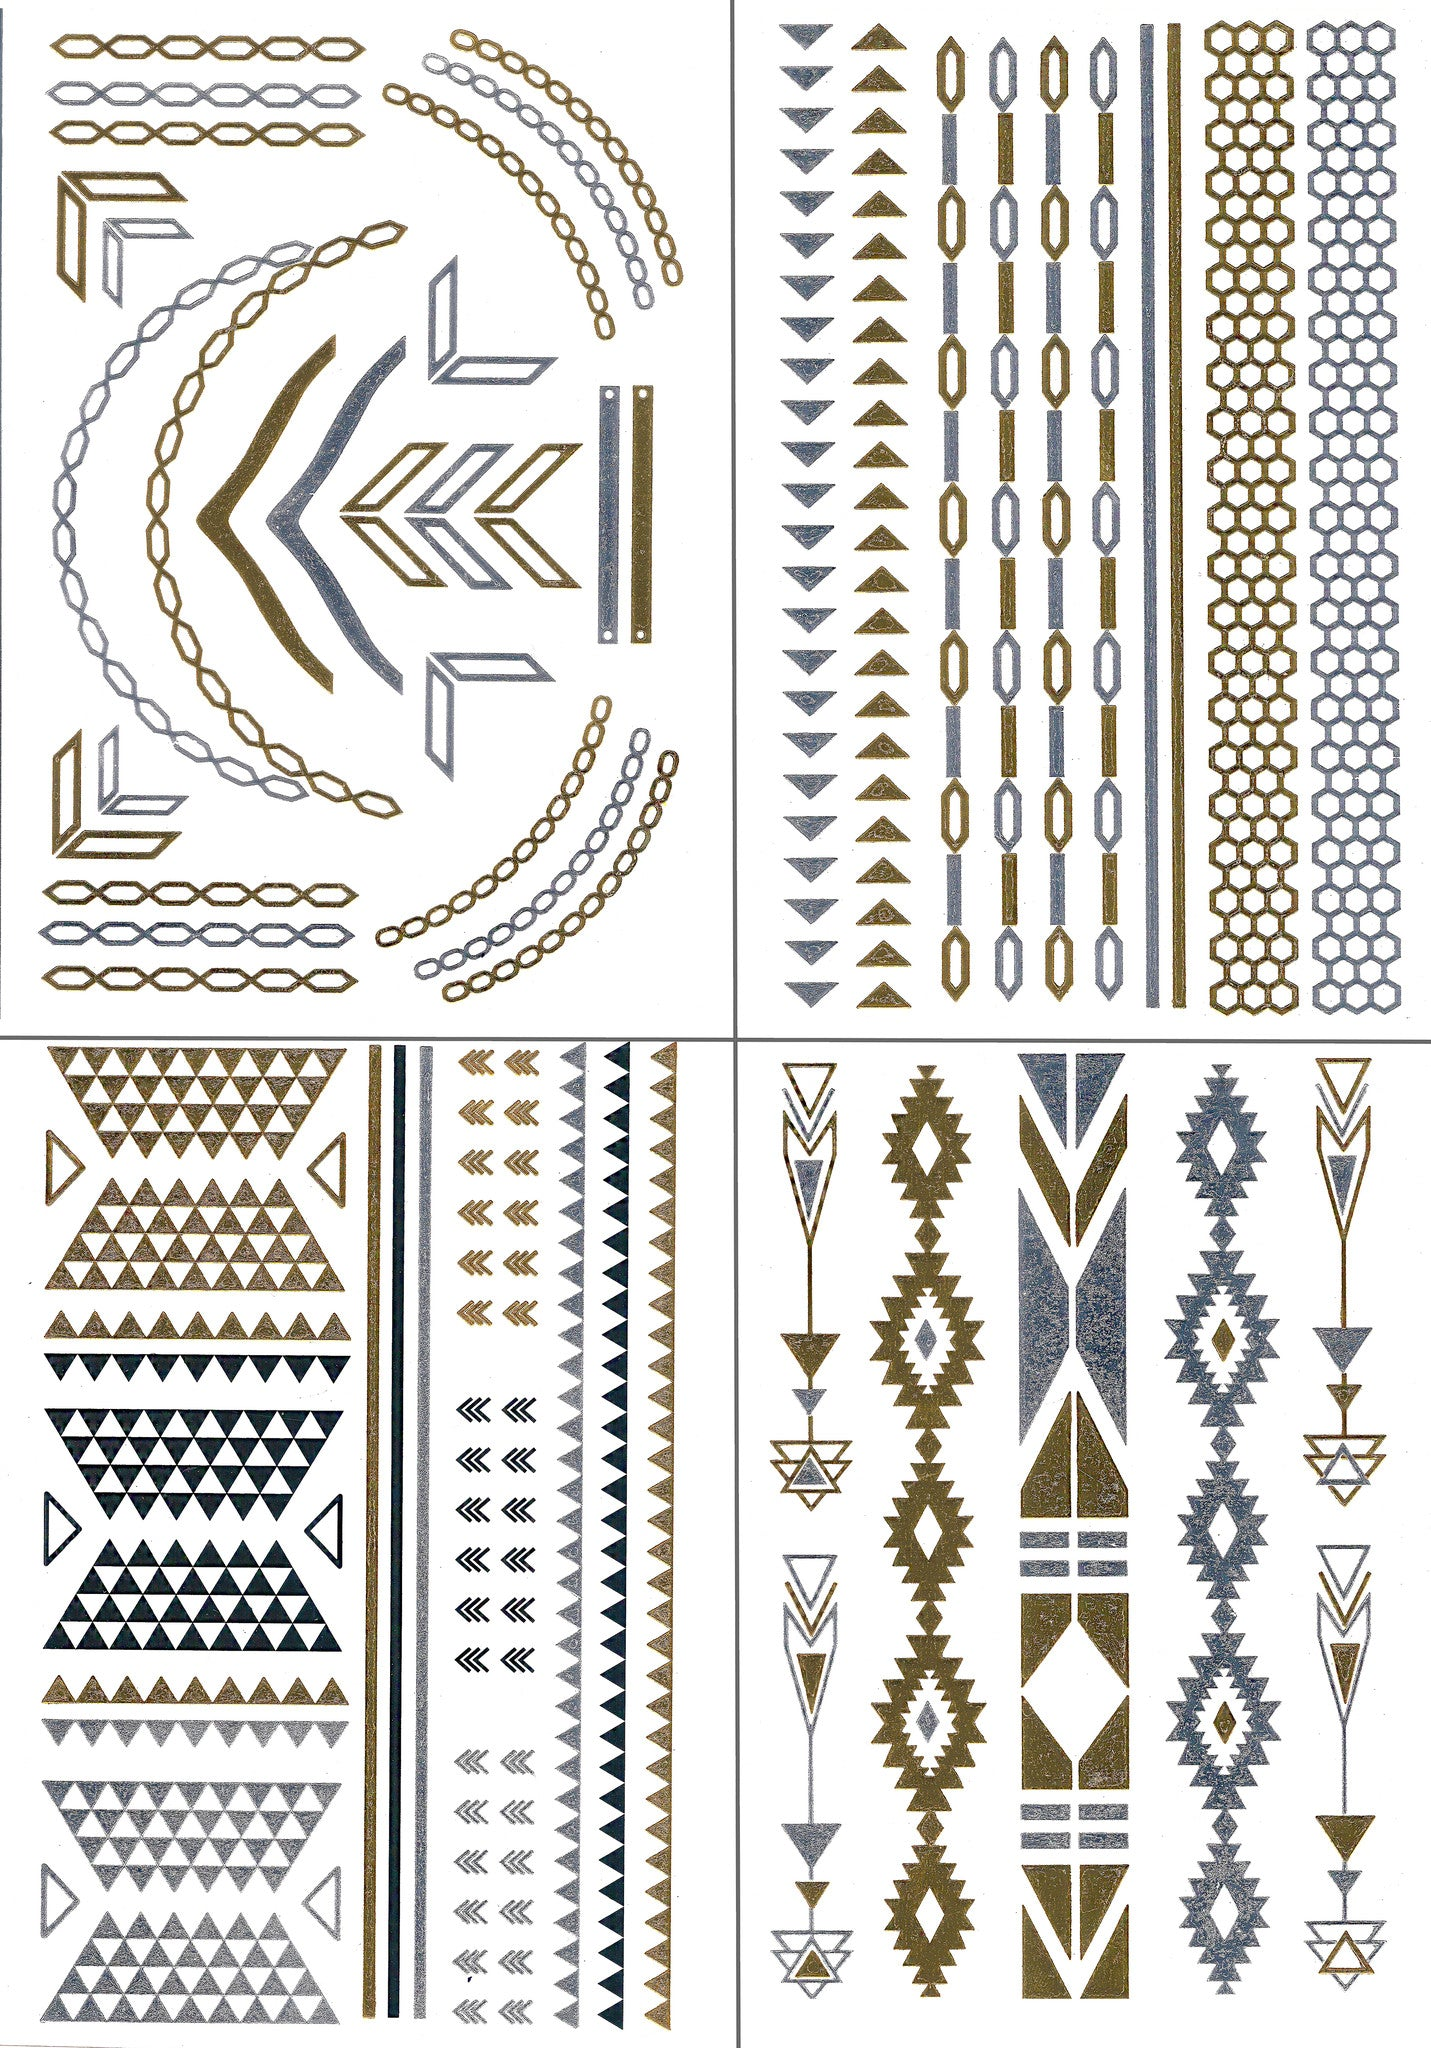 Temporary Metallic Tattoos Pack (Set of 4 Sheets) by BG247